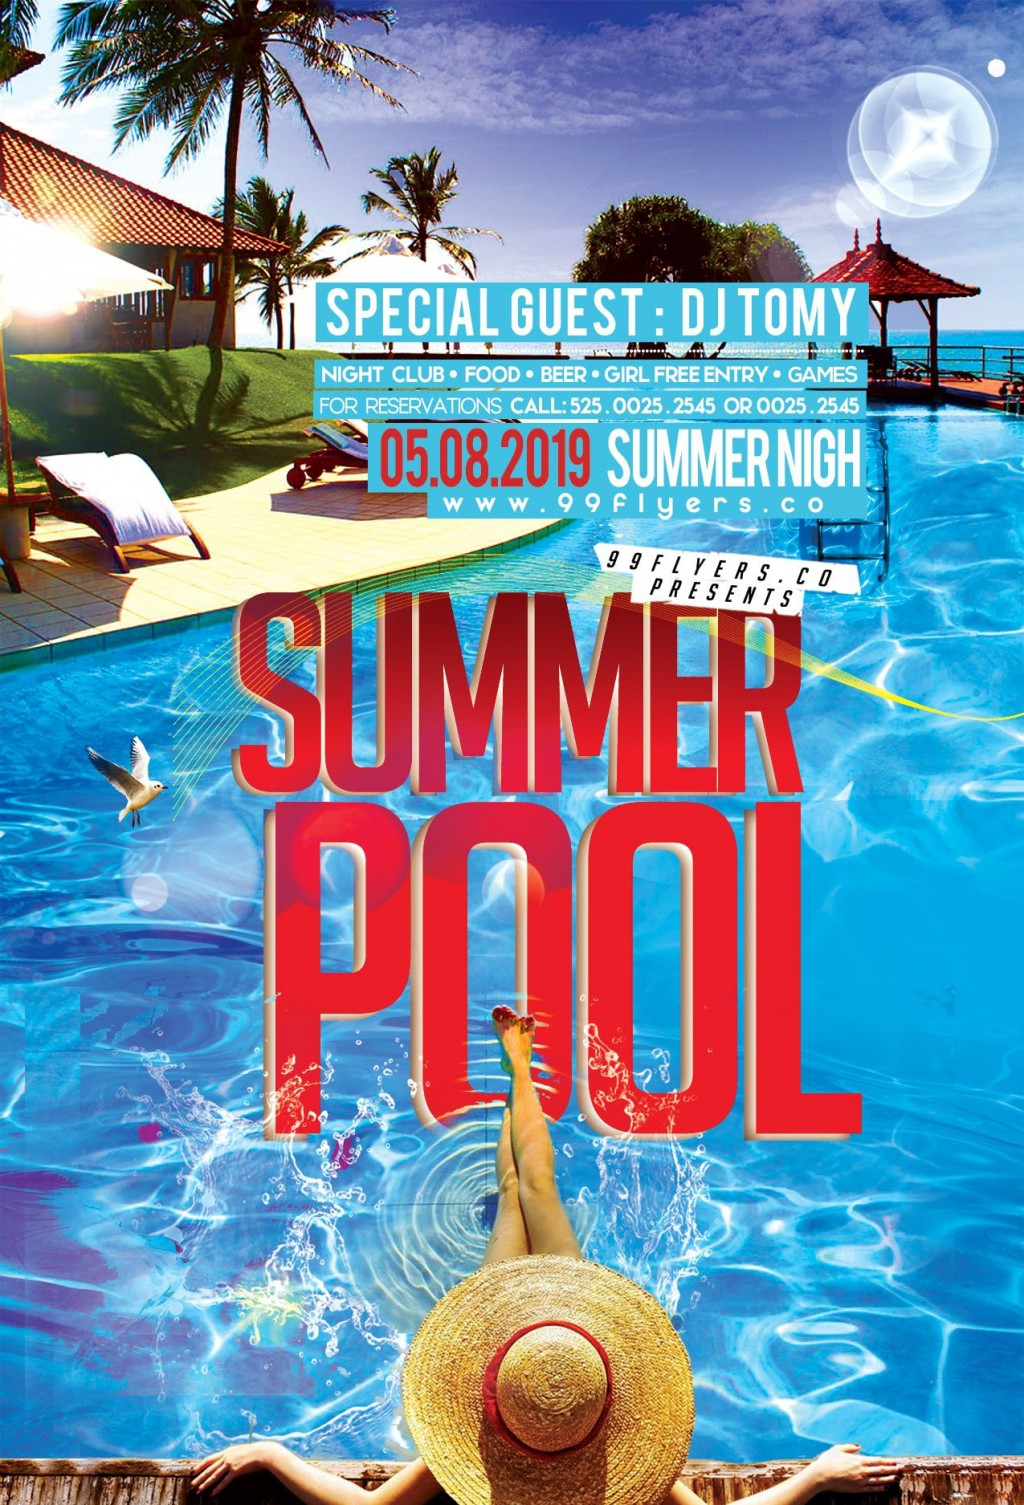 006 Exceptional Pool Party Flyer Template Free Sample  Photoshop PsdLarge